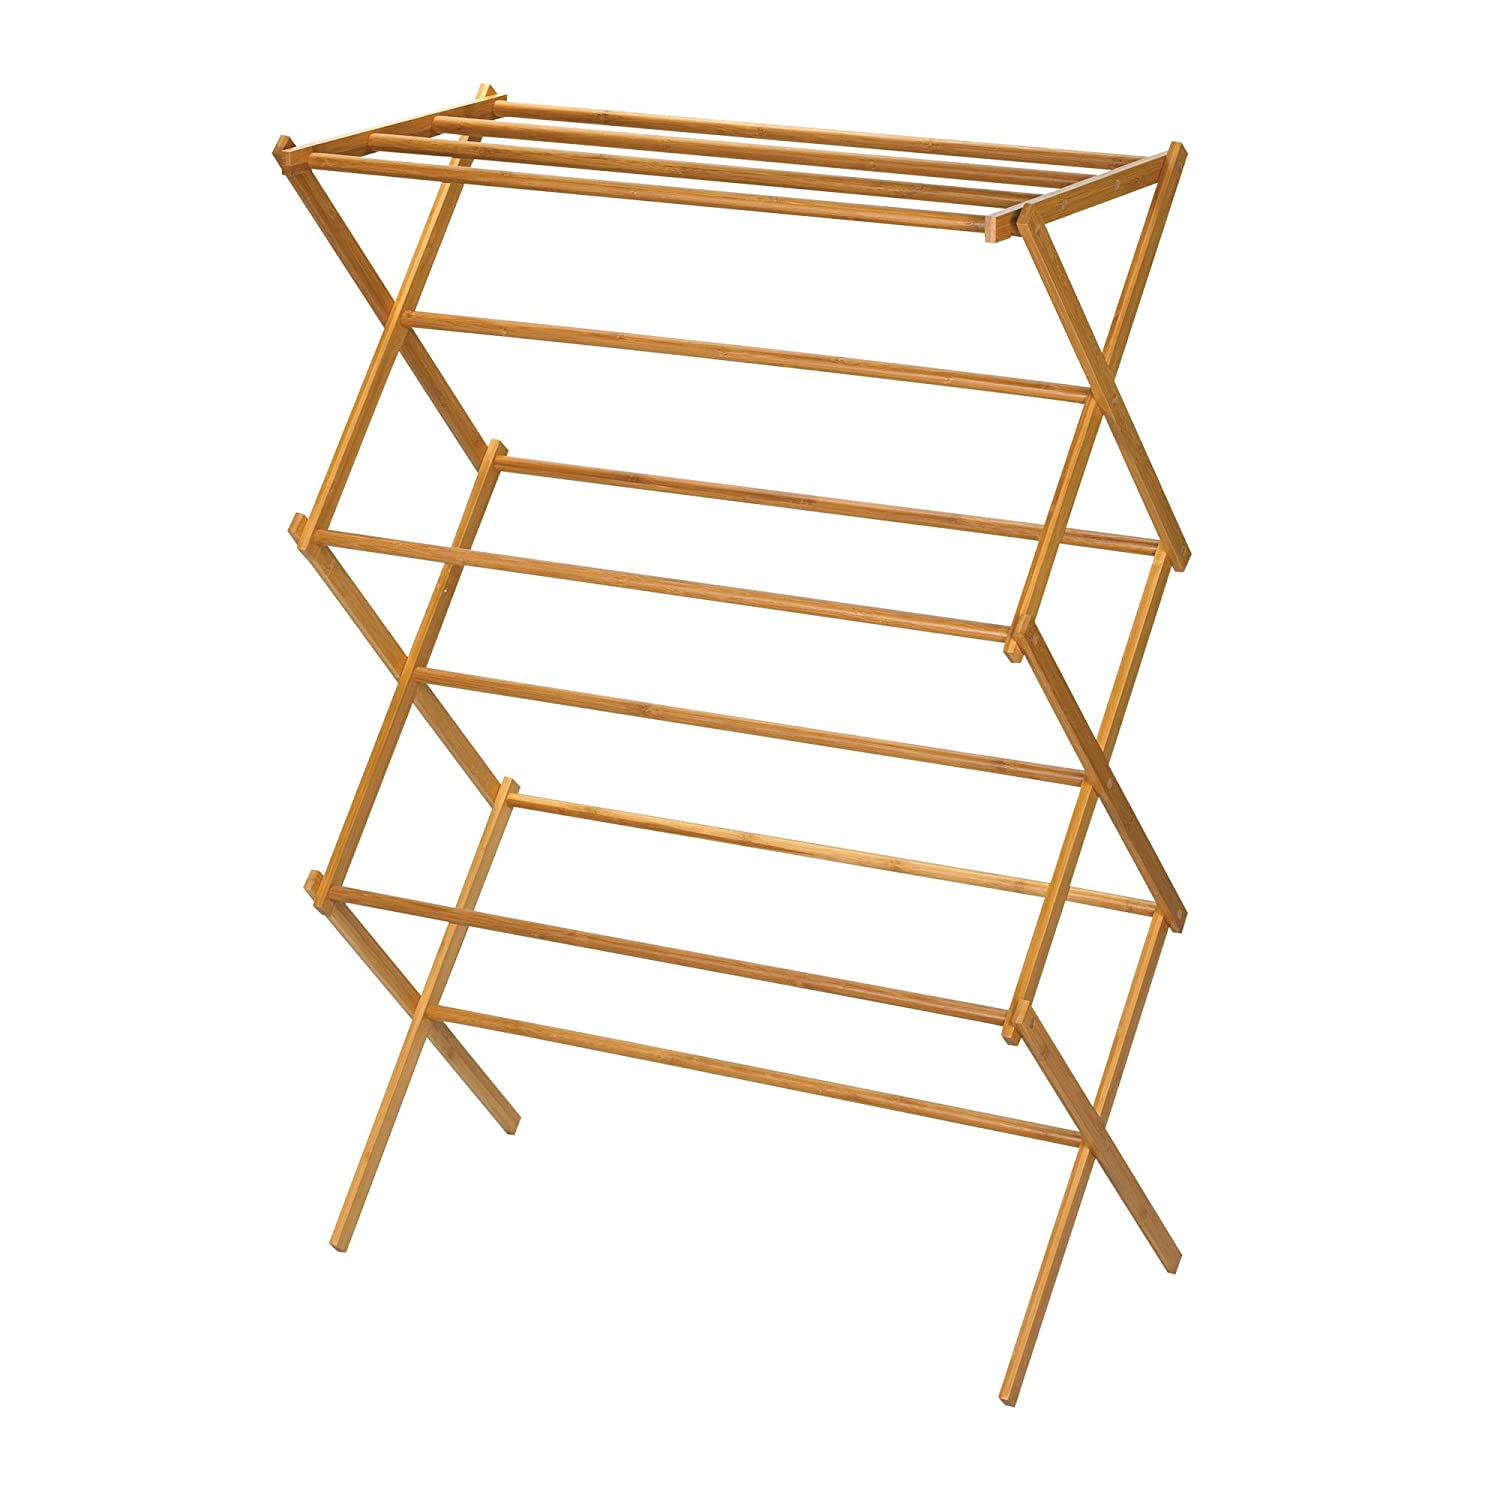 Amazon.com: Household Essentials 6524 Tall Indoor Folding Wooden Clothes  Drying Rack | Dry Laundry and Hang Clothes | Bamboo: Home & Kitchen